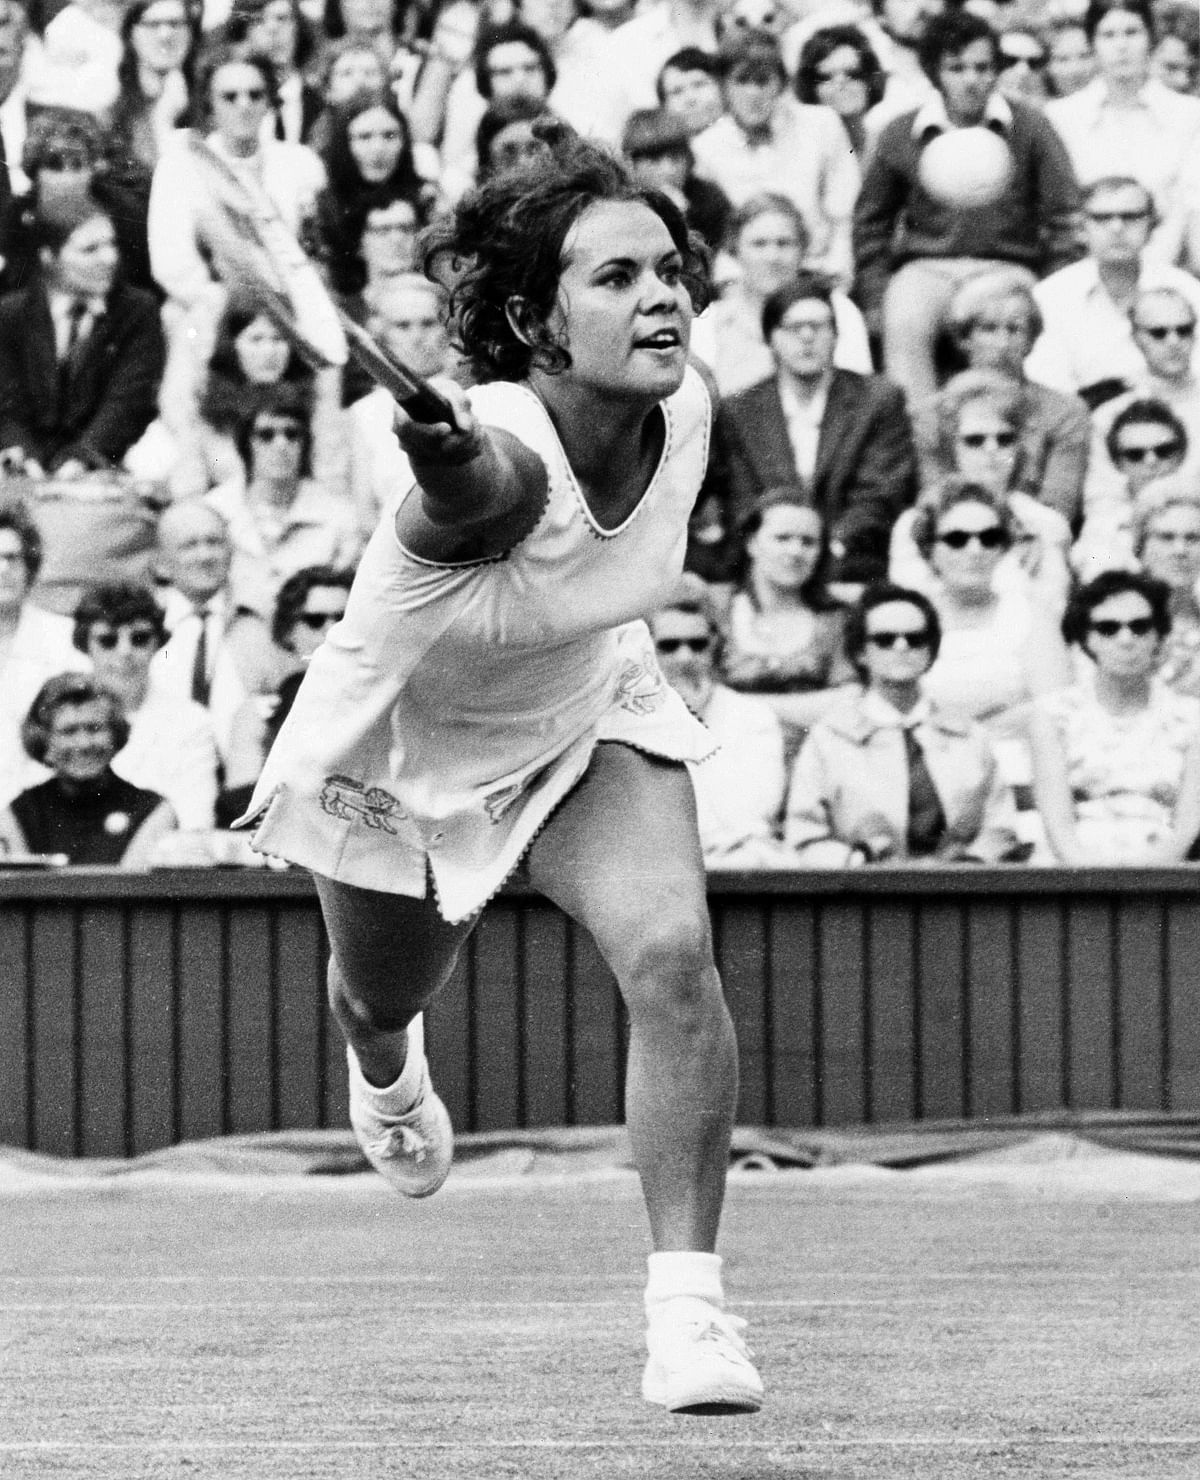 In this 1971 photo, Australia's Evonne Goolagong shown in action during the All-England Tennis Championships at Wimbledon, England. Just weeks after her victory in the 1971 French Open, Goolagong became the first indigenous Australian to win Wimbledon when she defeated Margaret Court. (Photo: AP)<a></a>